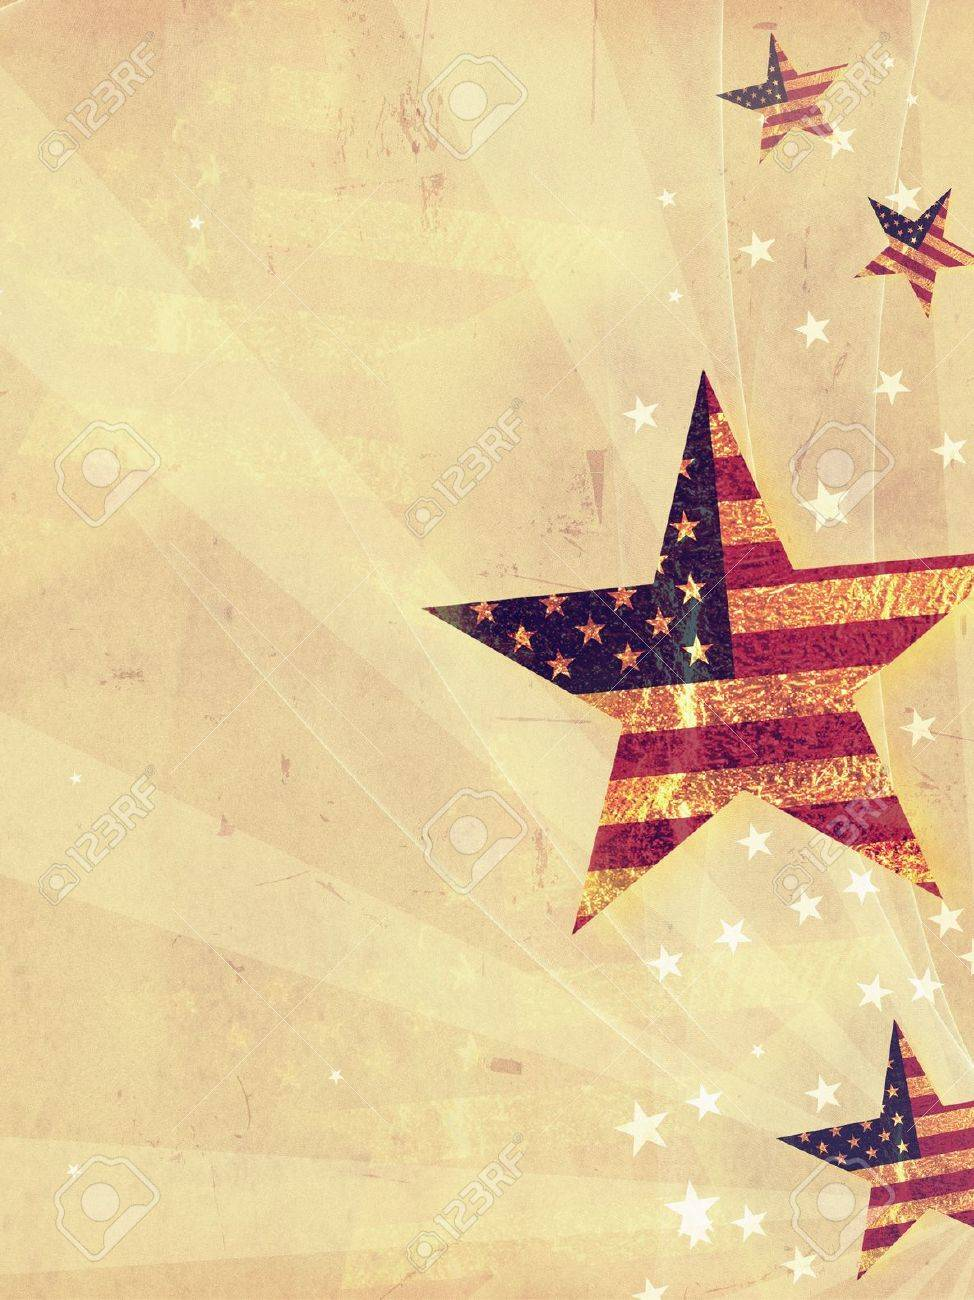 stars with USA flag and rays over old paper background Stock Photo - 14013507